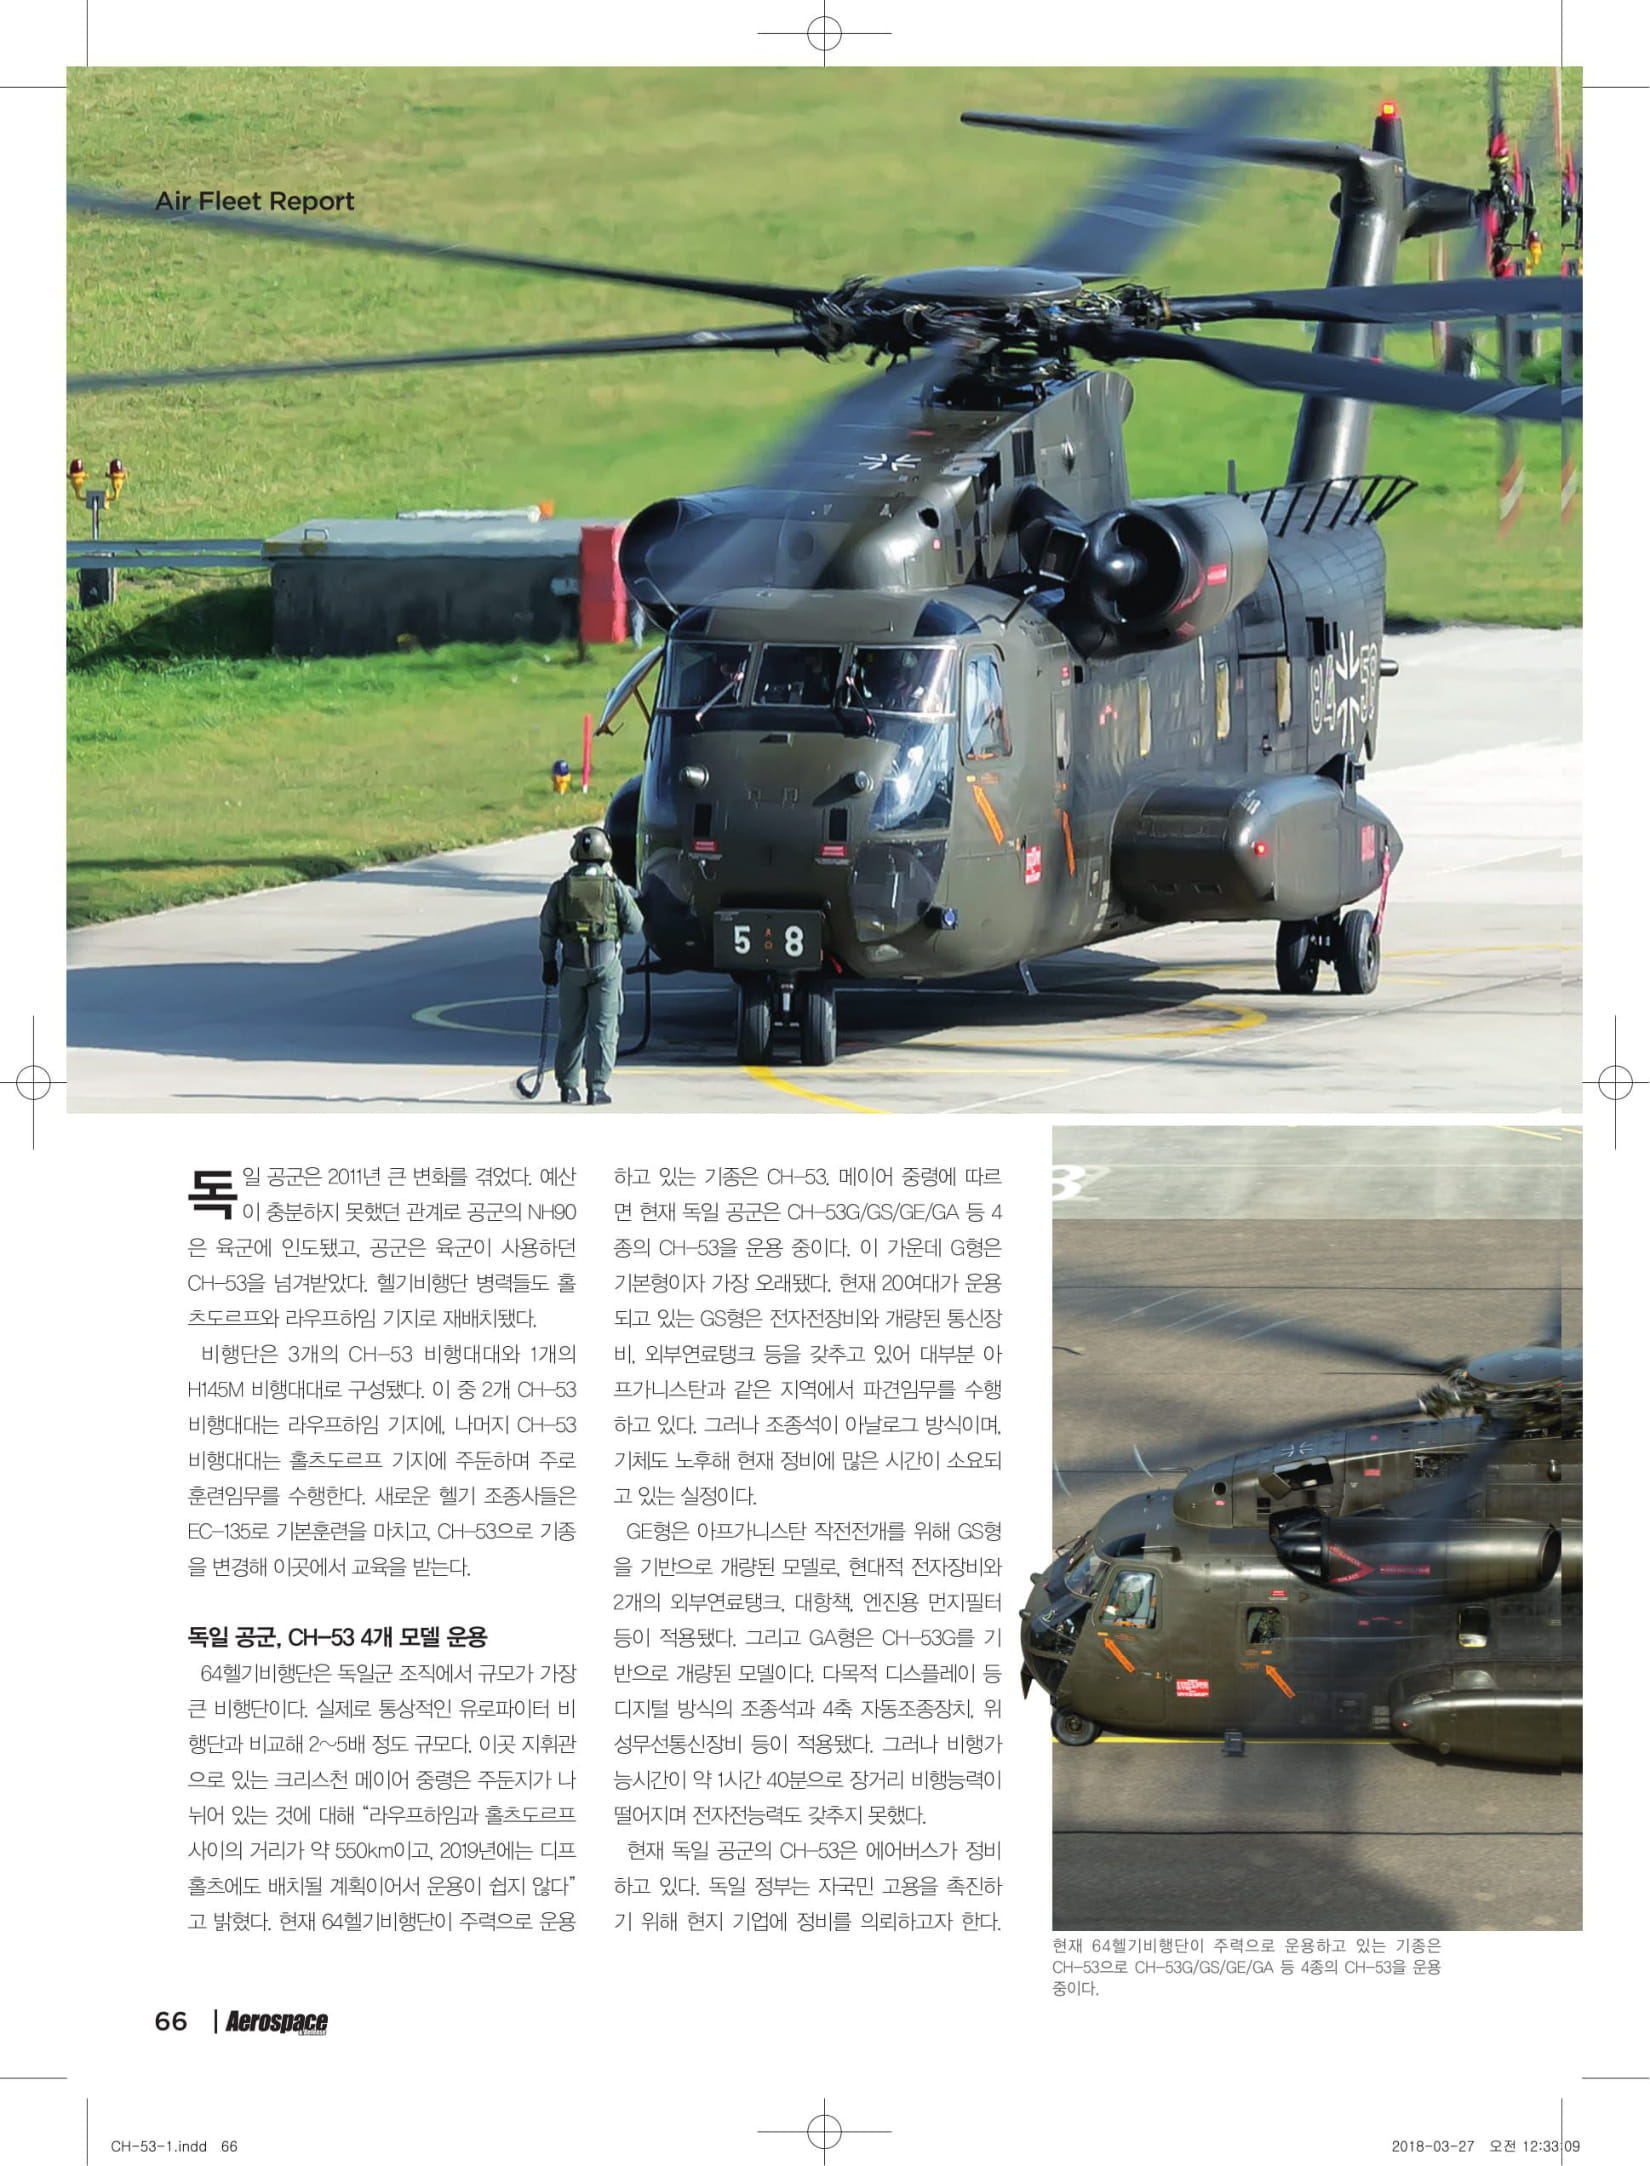 Aerospace & Defense (Korea)_CH53 HSG64 Laupheim-04